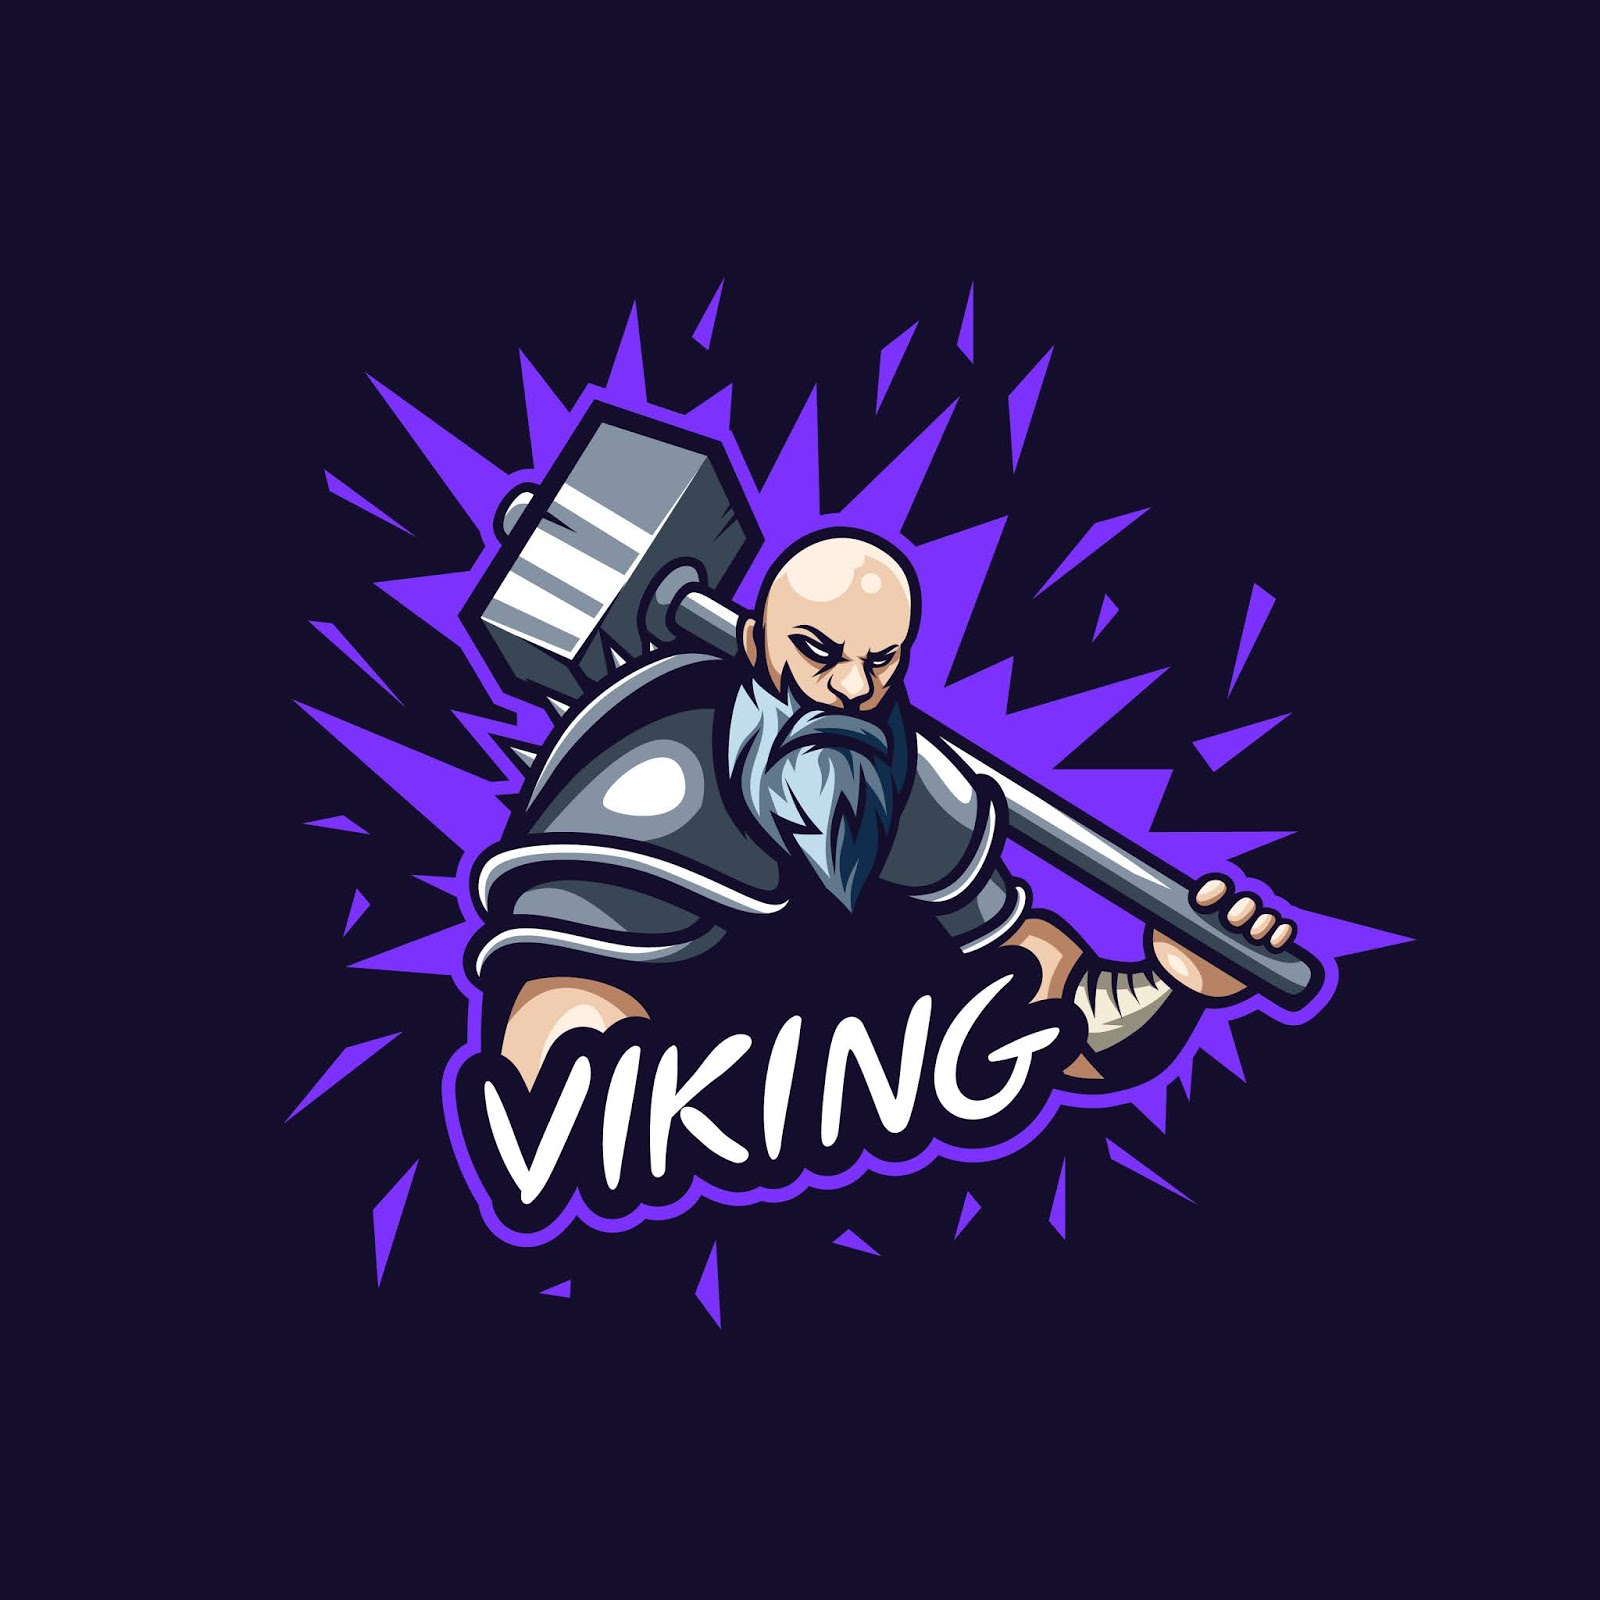 Awesome Viking Logo Illustration Gaming Squad Free Download Vector CDR, AI, EPS and PNG Formats